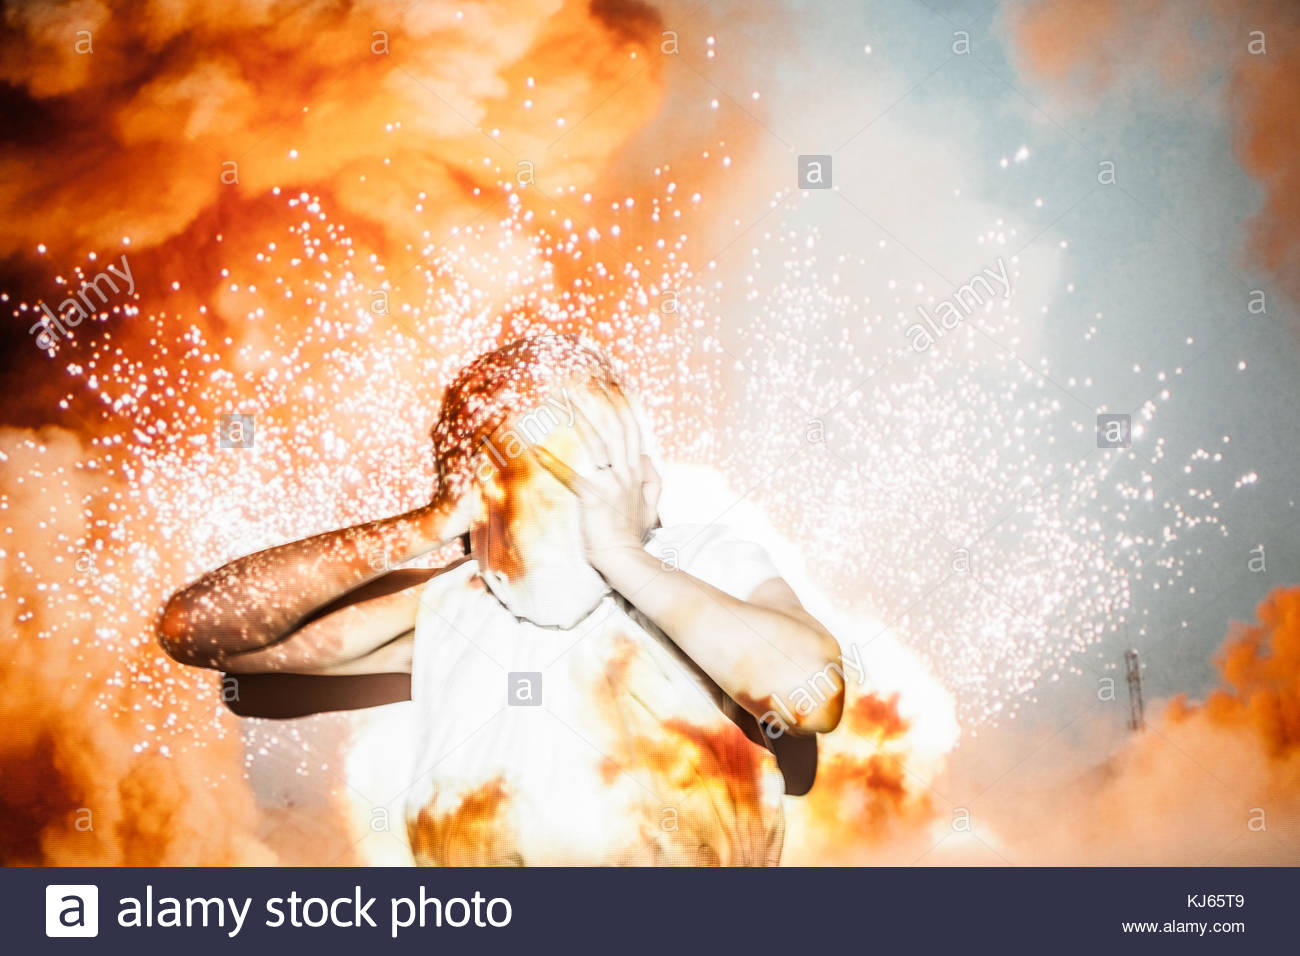 Person against projector background - Stock Image